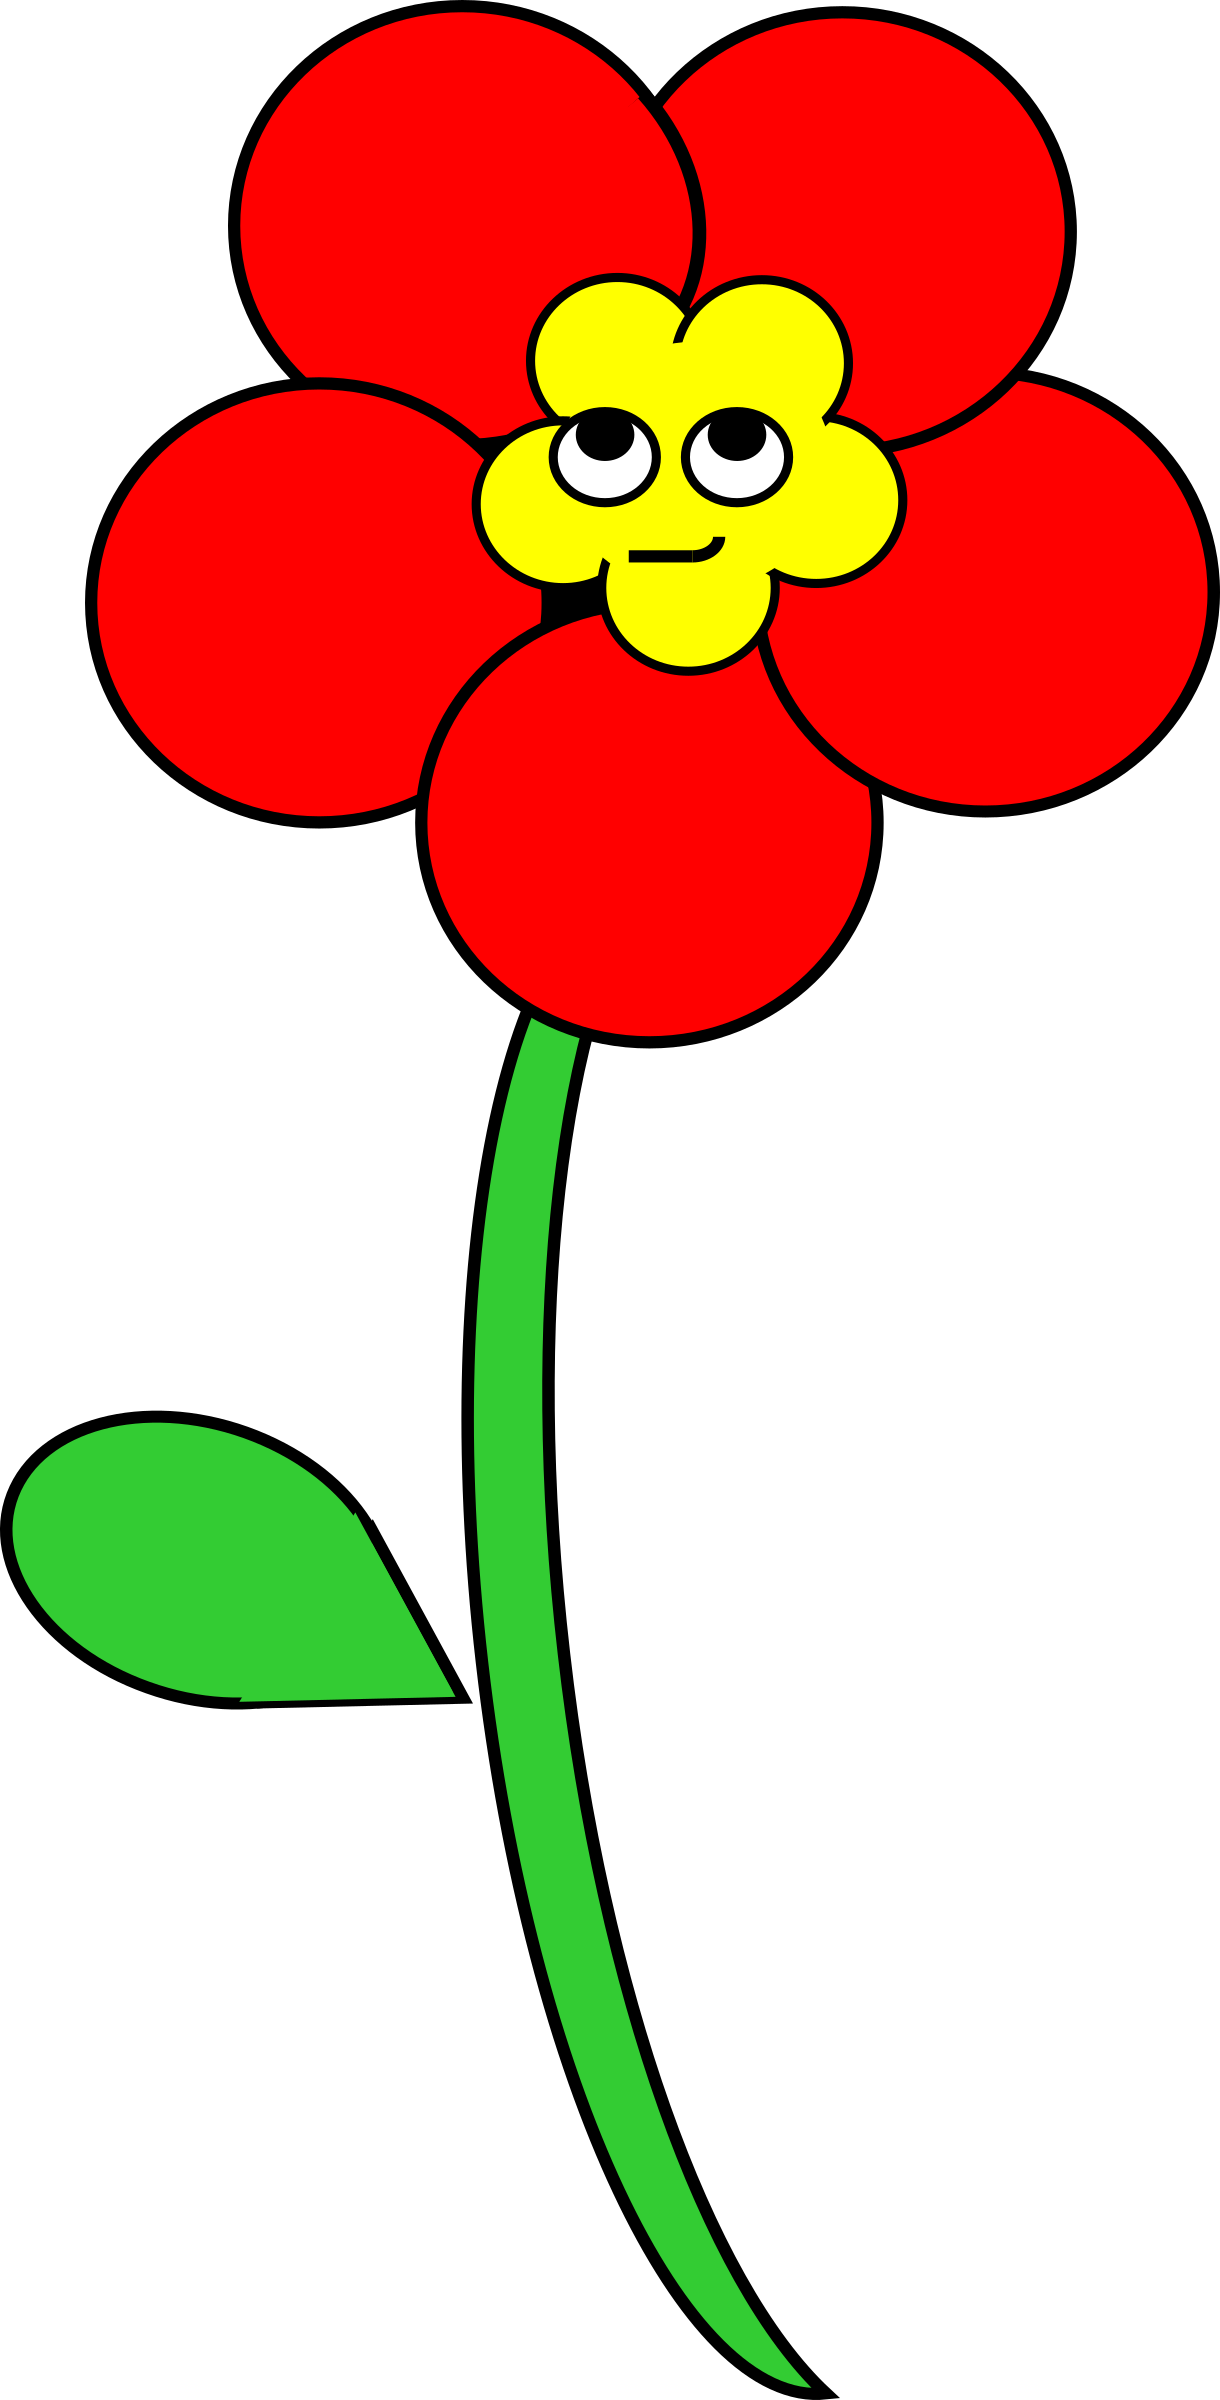 Flowers clipart smile. Smiling poppy big image